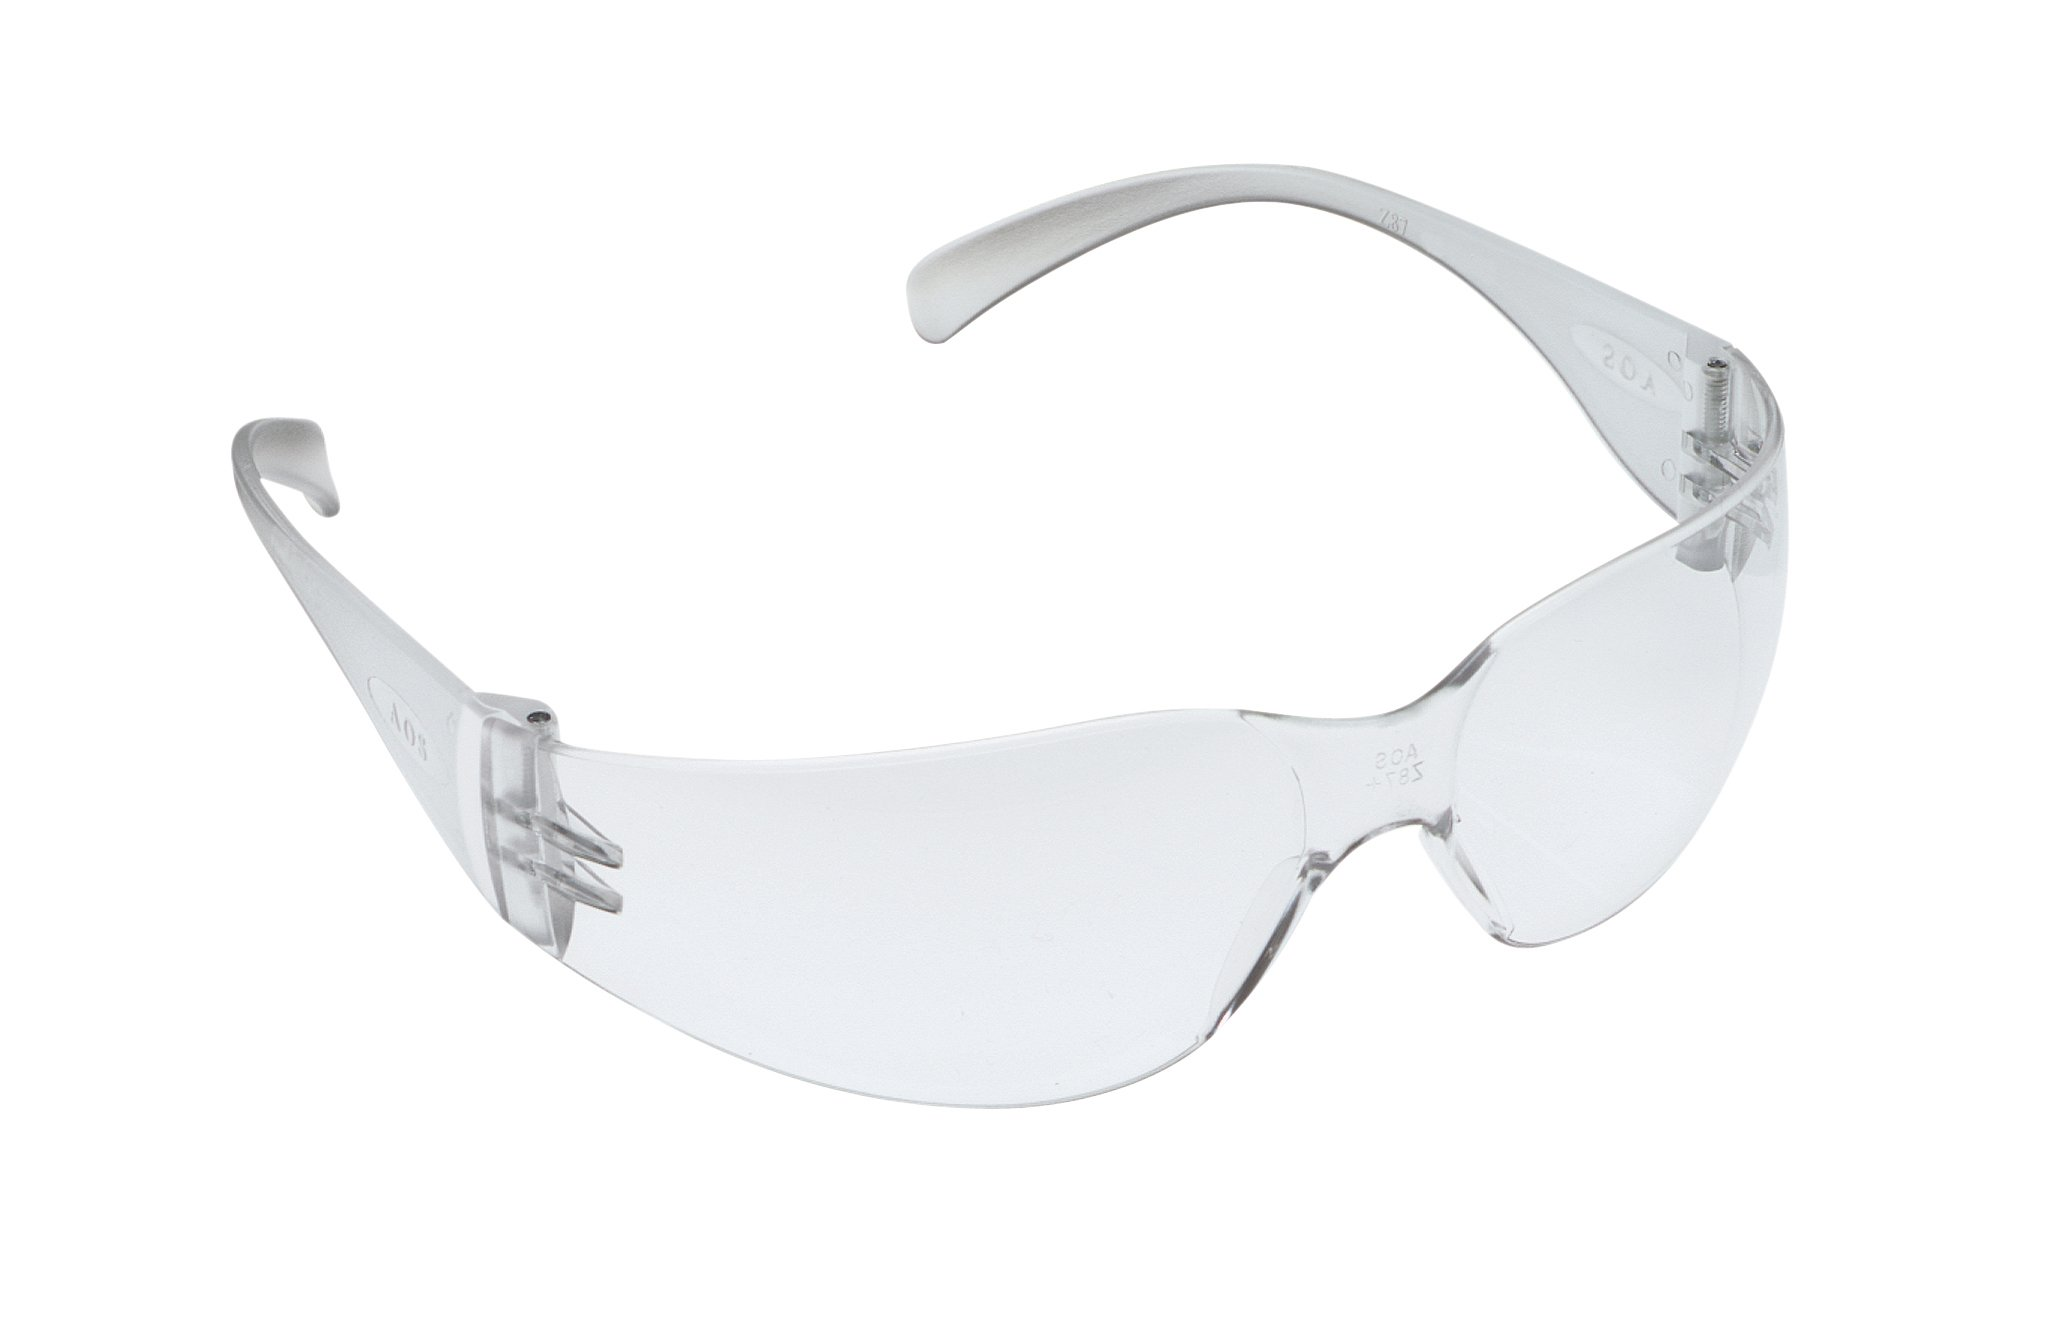 3M Virtua Protective Eyewear, 11326-00000-100 Clear Temples Clear Hard Coat Lens (Pack of 100) by 3M Personal Protective Equipment